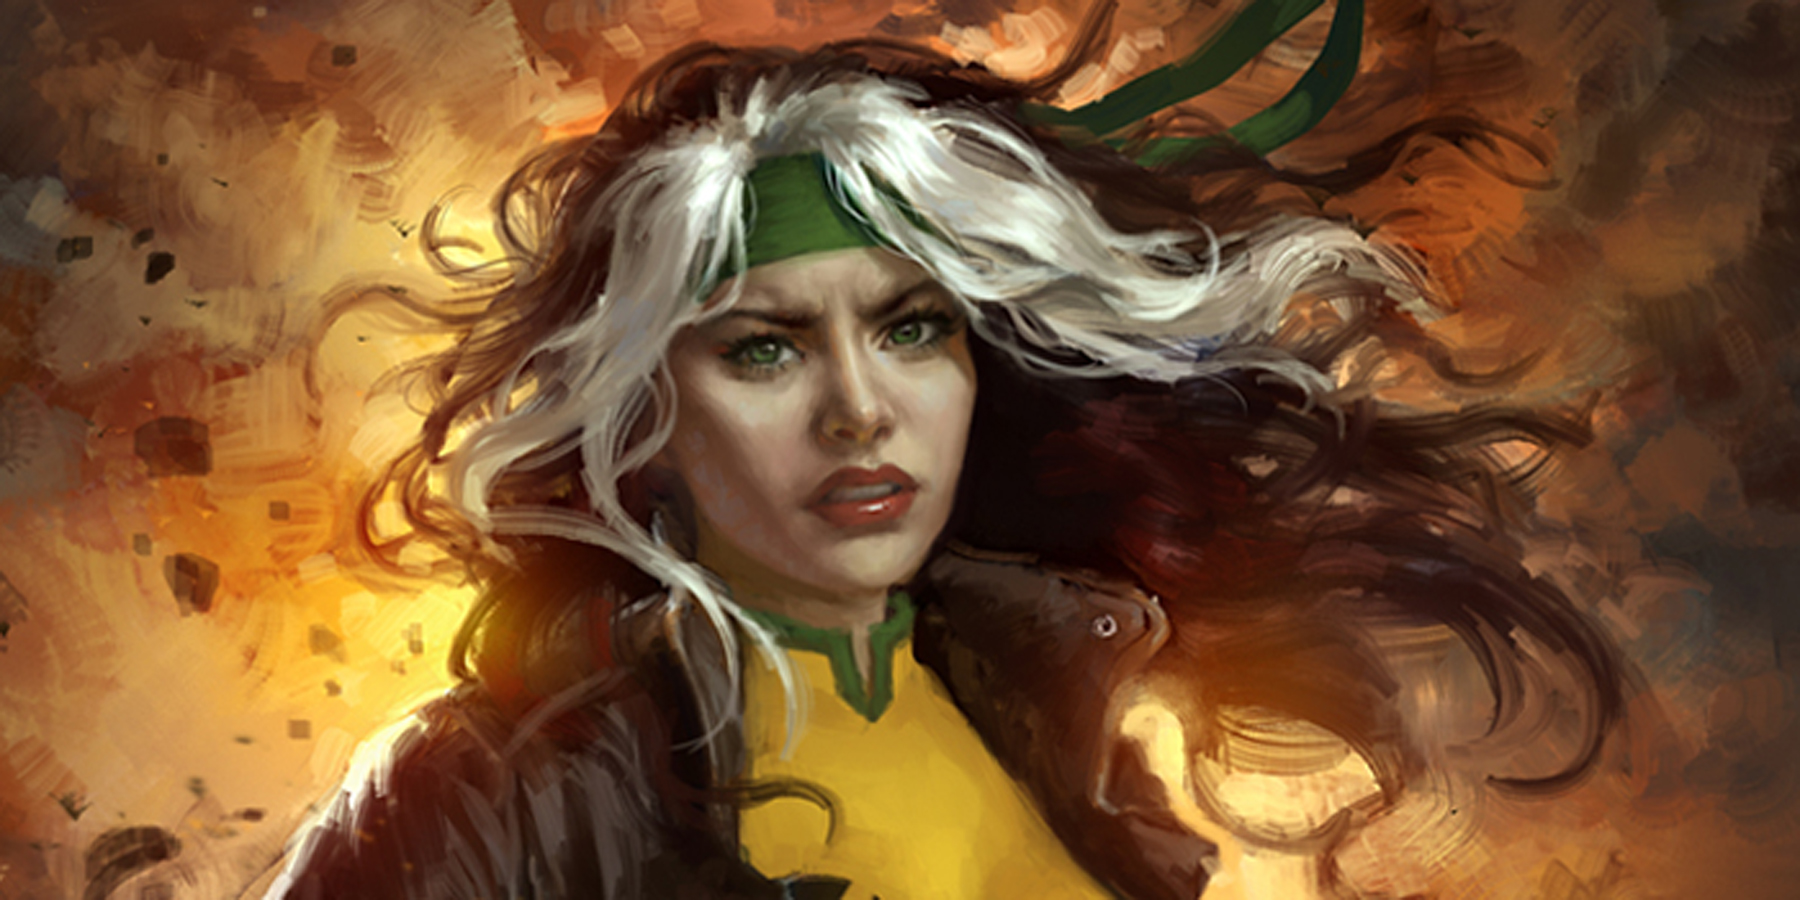 rogue from xmen movie naked pics